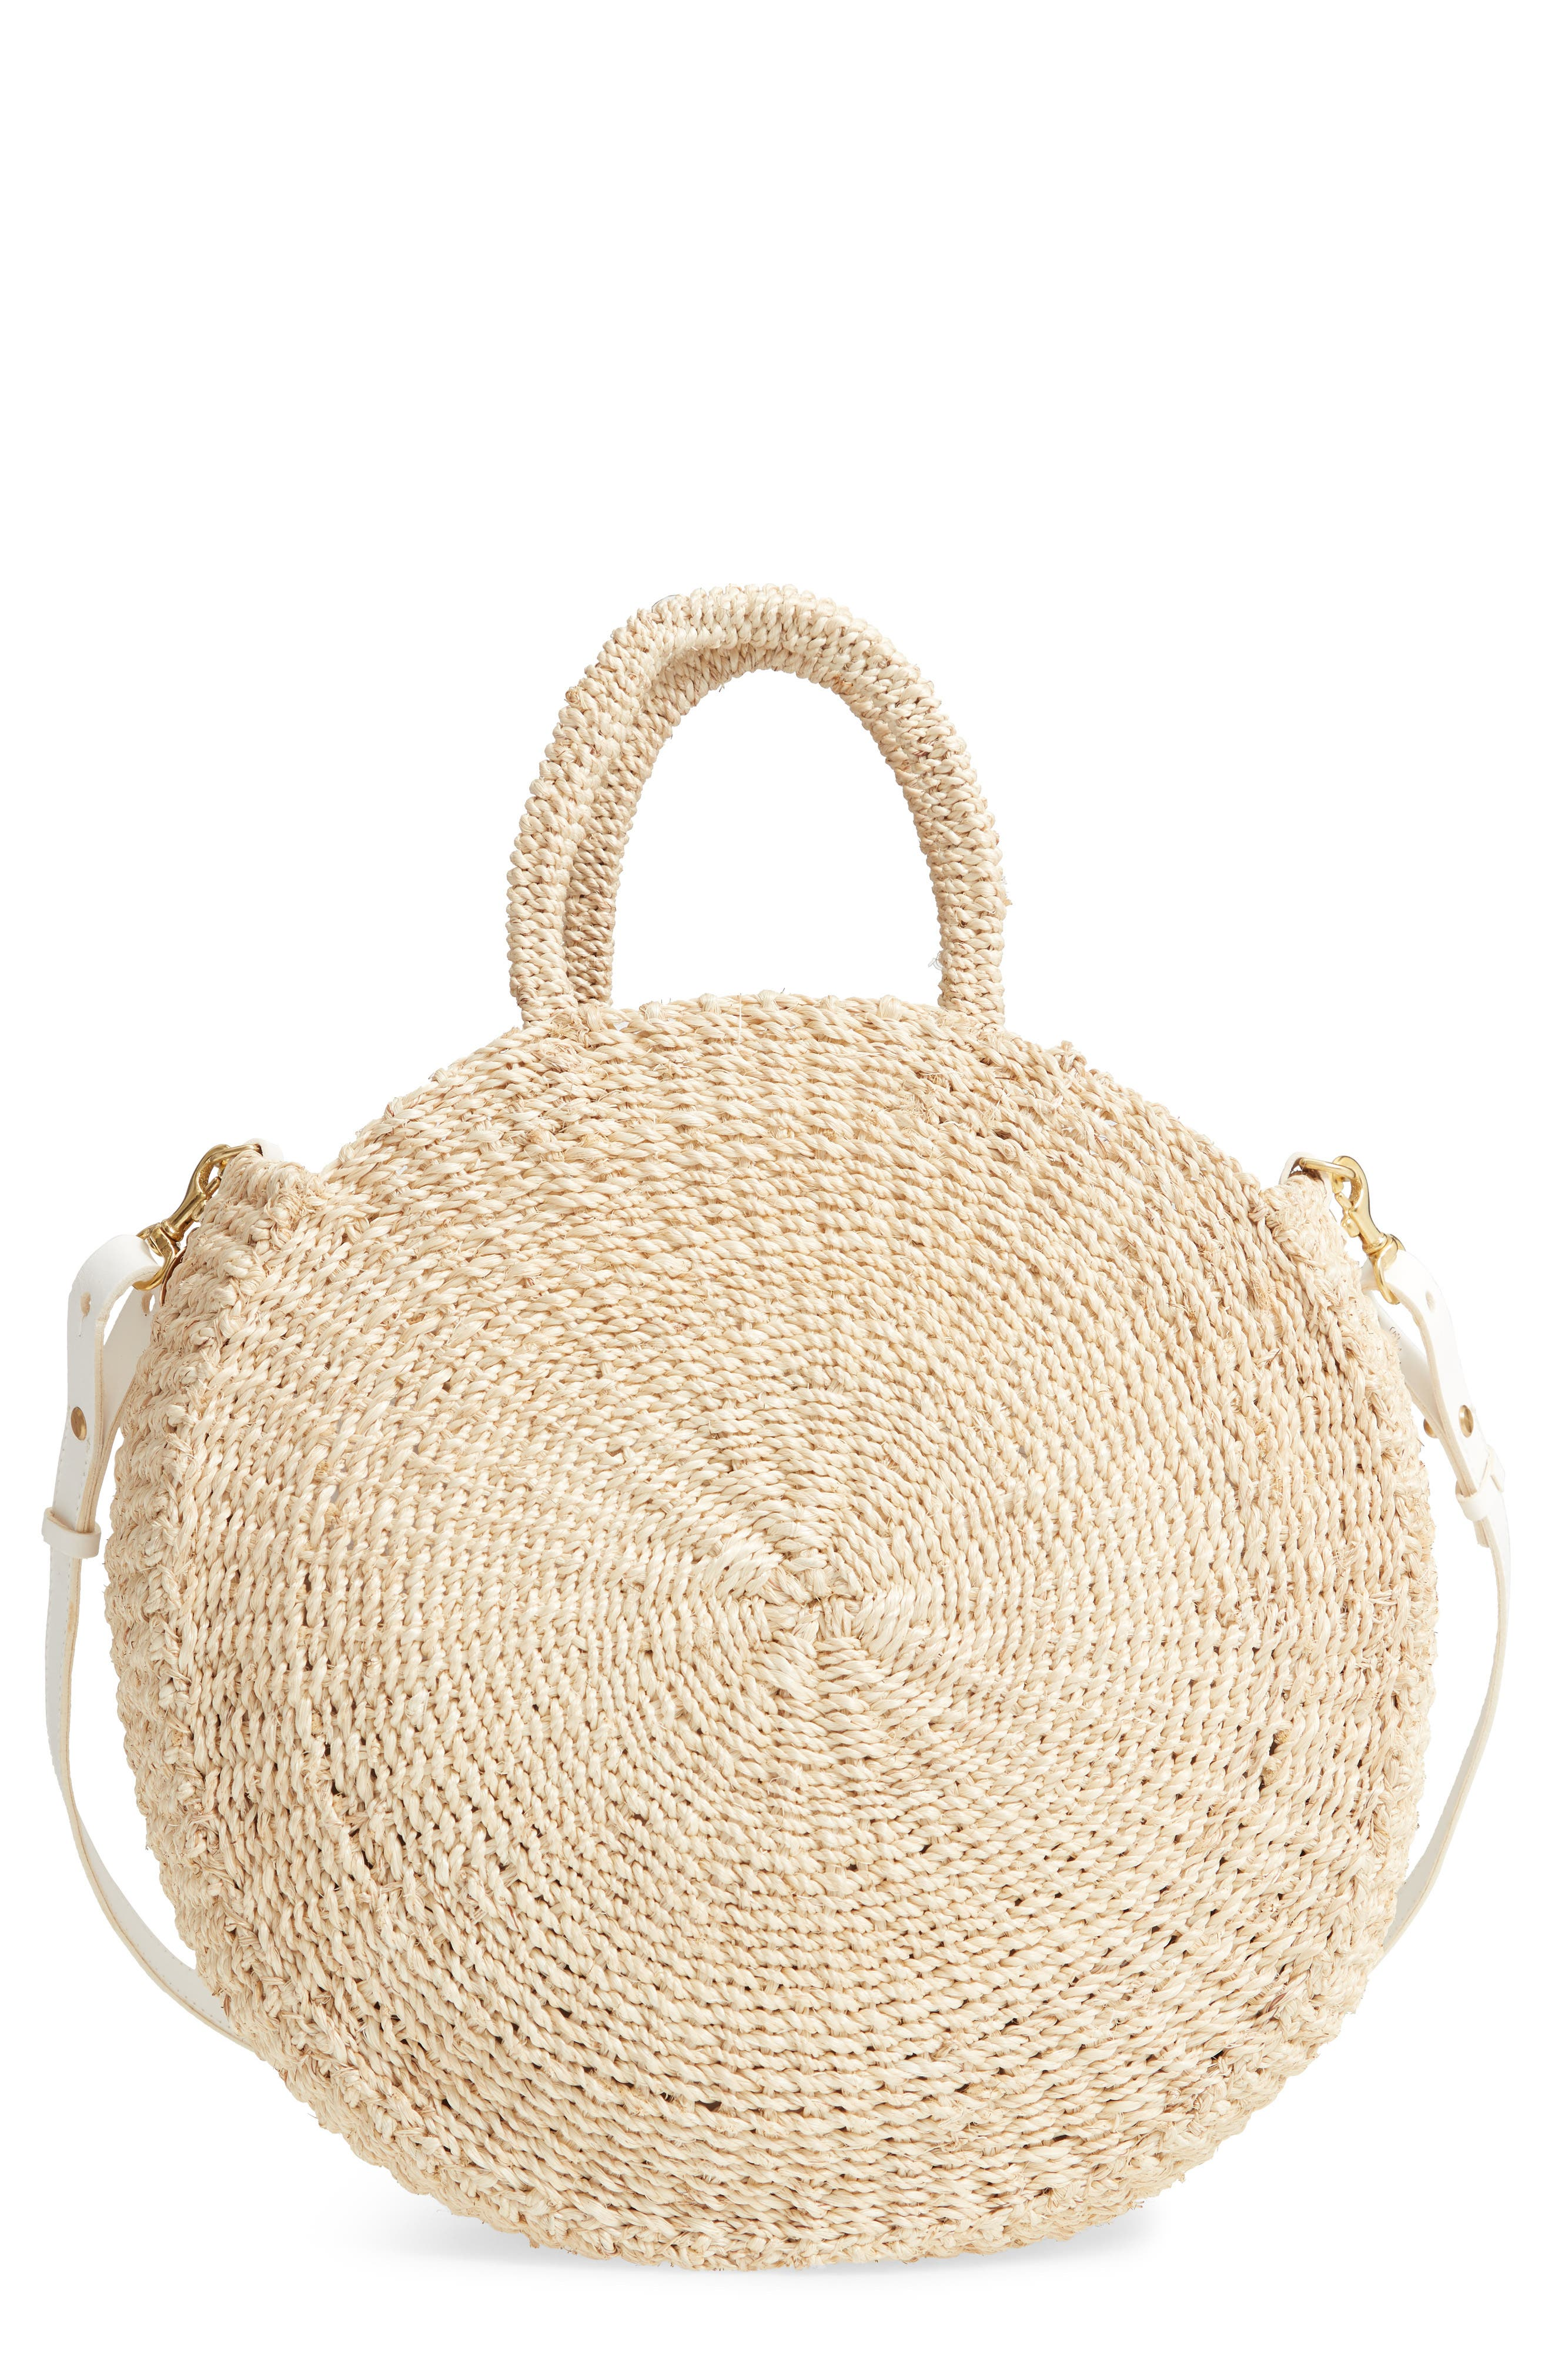 1950s Handbags, Purses, and Evening Bag Styles Clare V. Alice Woven Sisal Straw Bag - $225.00 AT vintagedancer.com